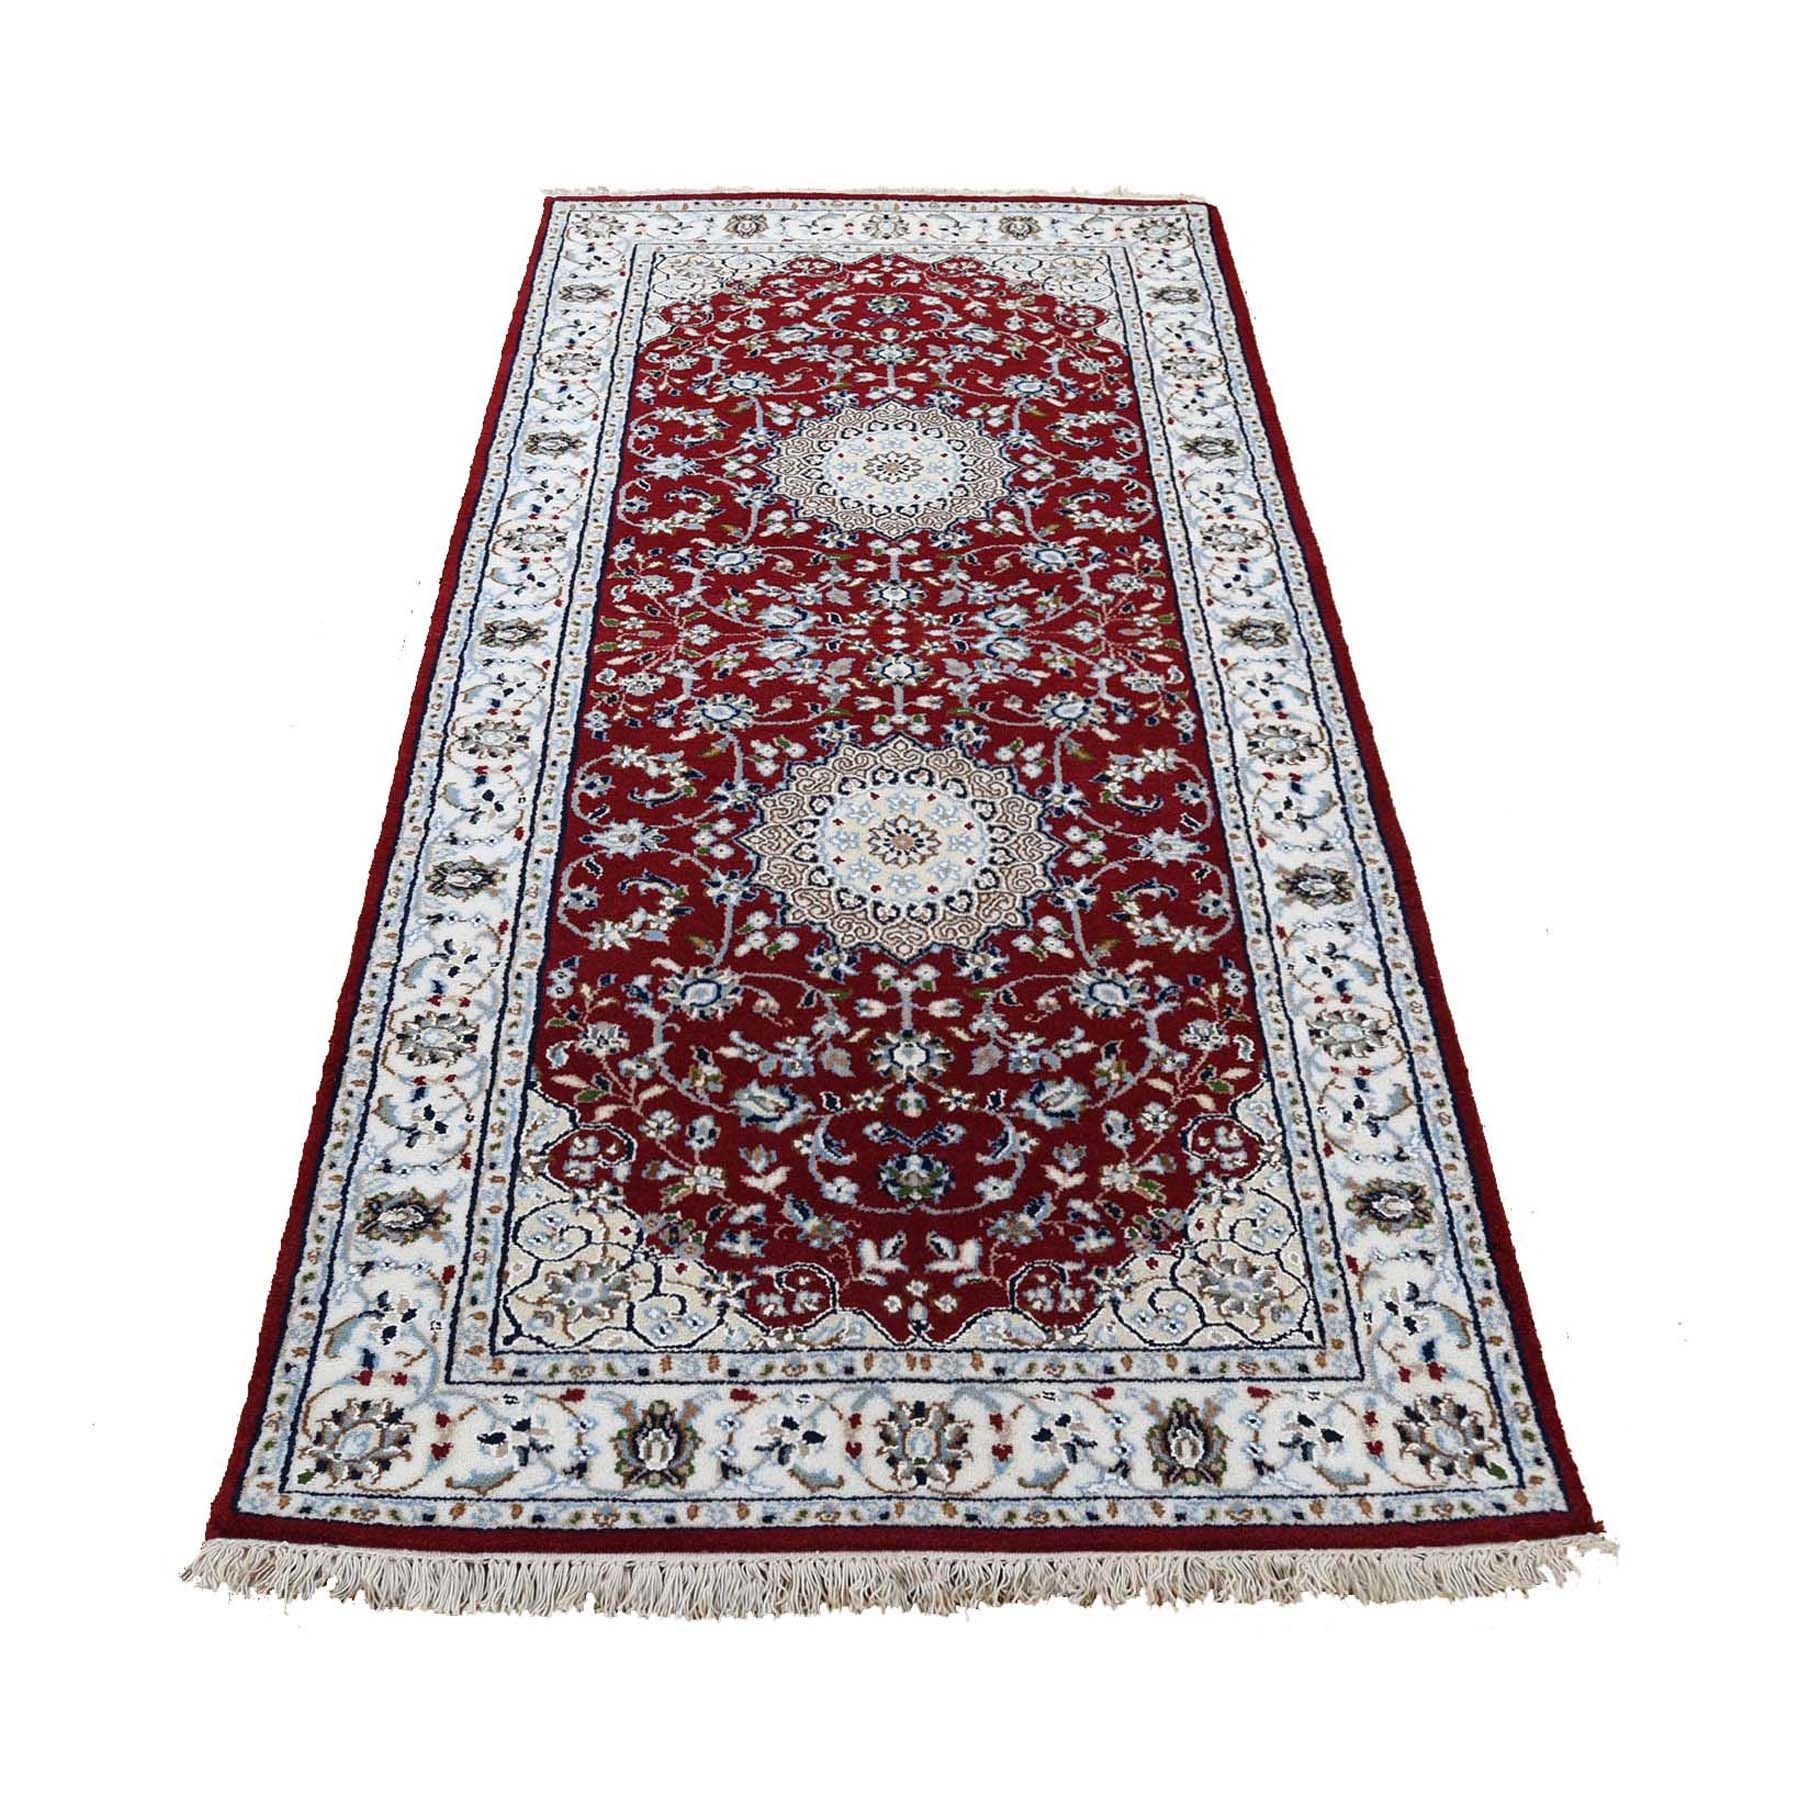 Pirniakan Collection Hand Knotted Red Rug No: 1118760